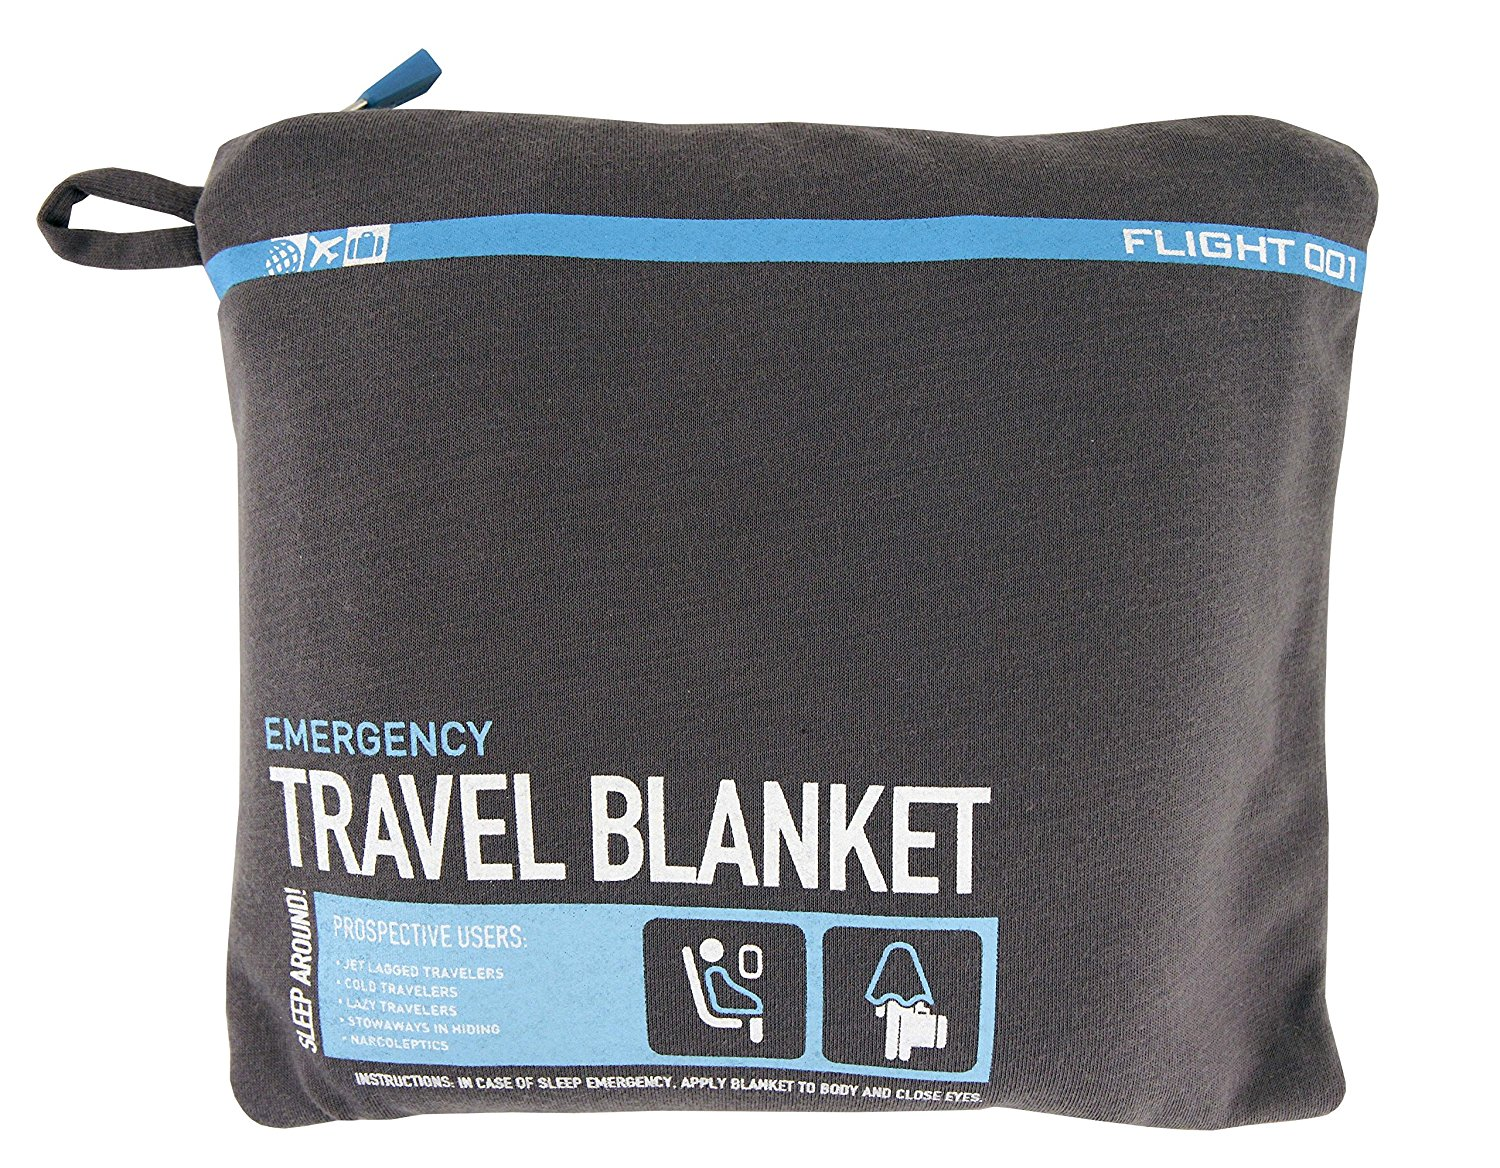 Flight 001 F1 Travel Blanket – Made from Soft and Durable Material, Acts as Blanket and Pillow, 4 Colors Available